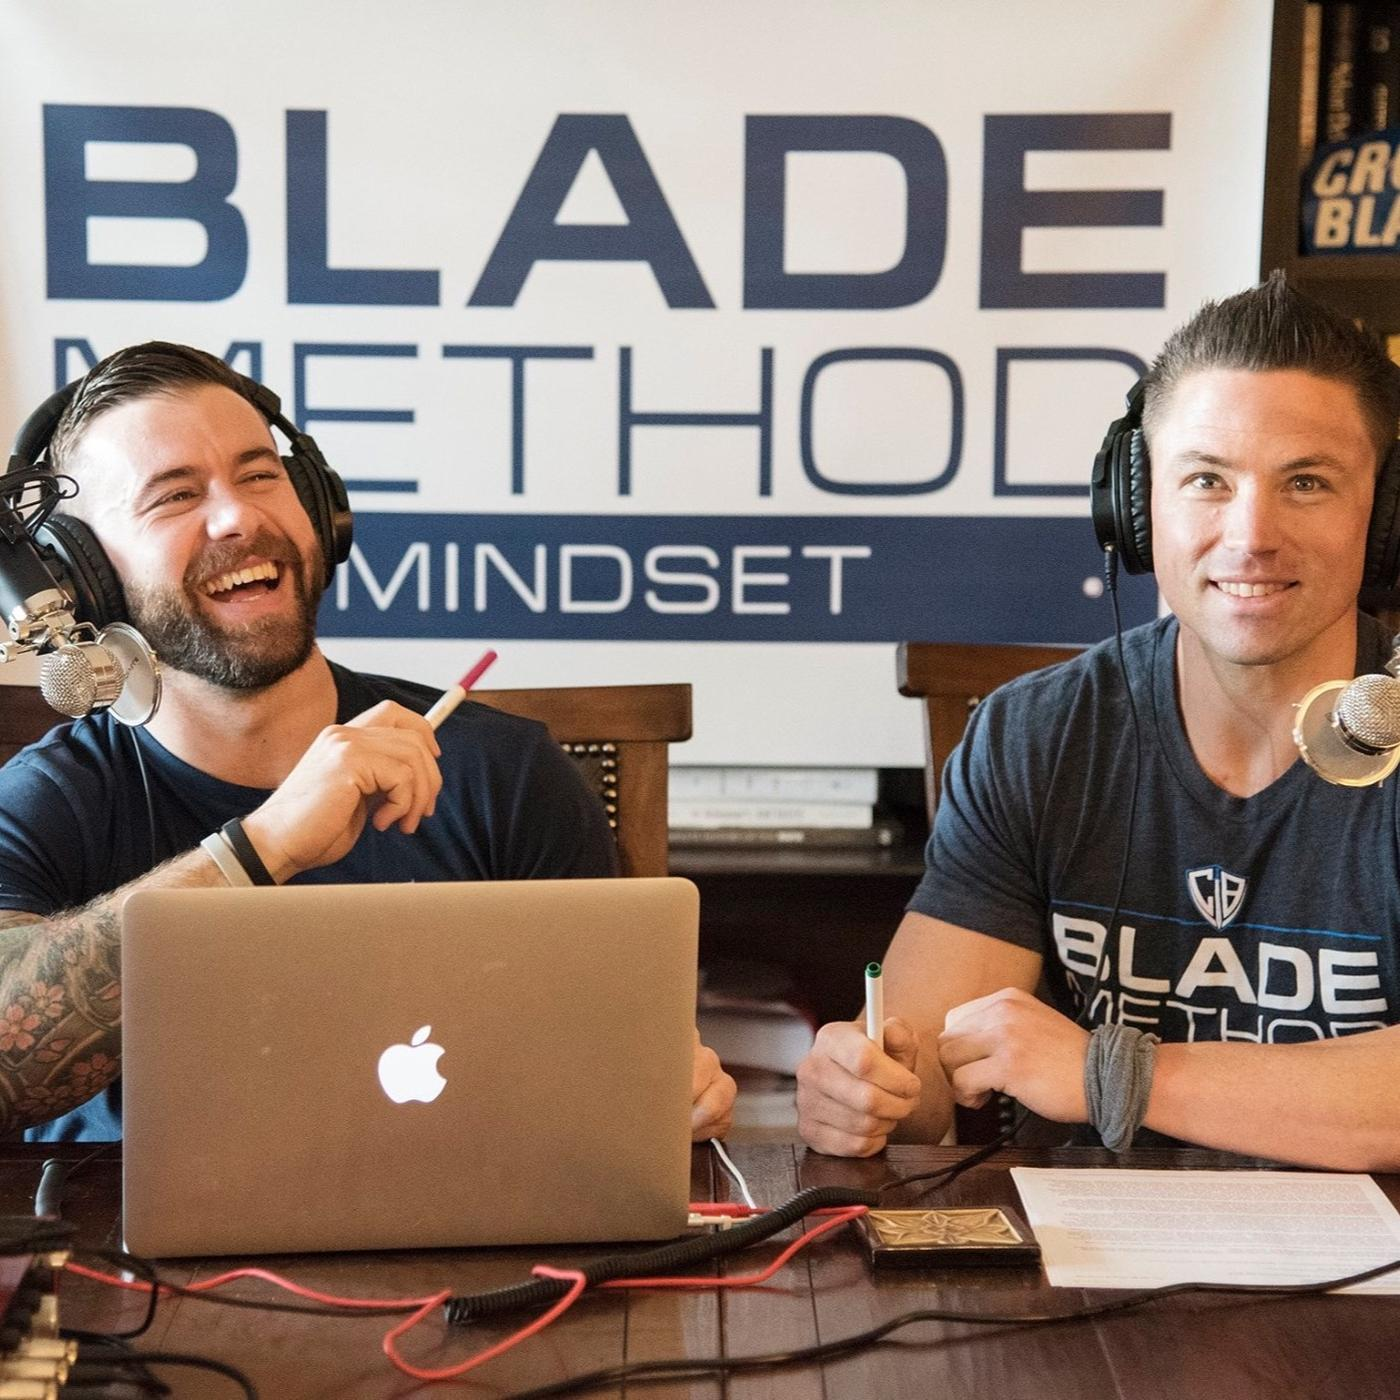 Blade Method Mindset (podcast) - Chris Treanor | Listen Notes